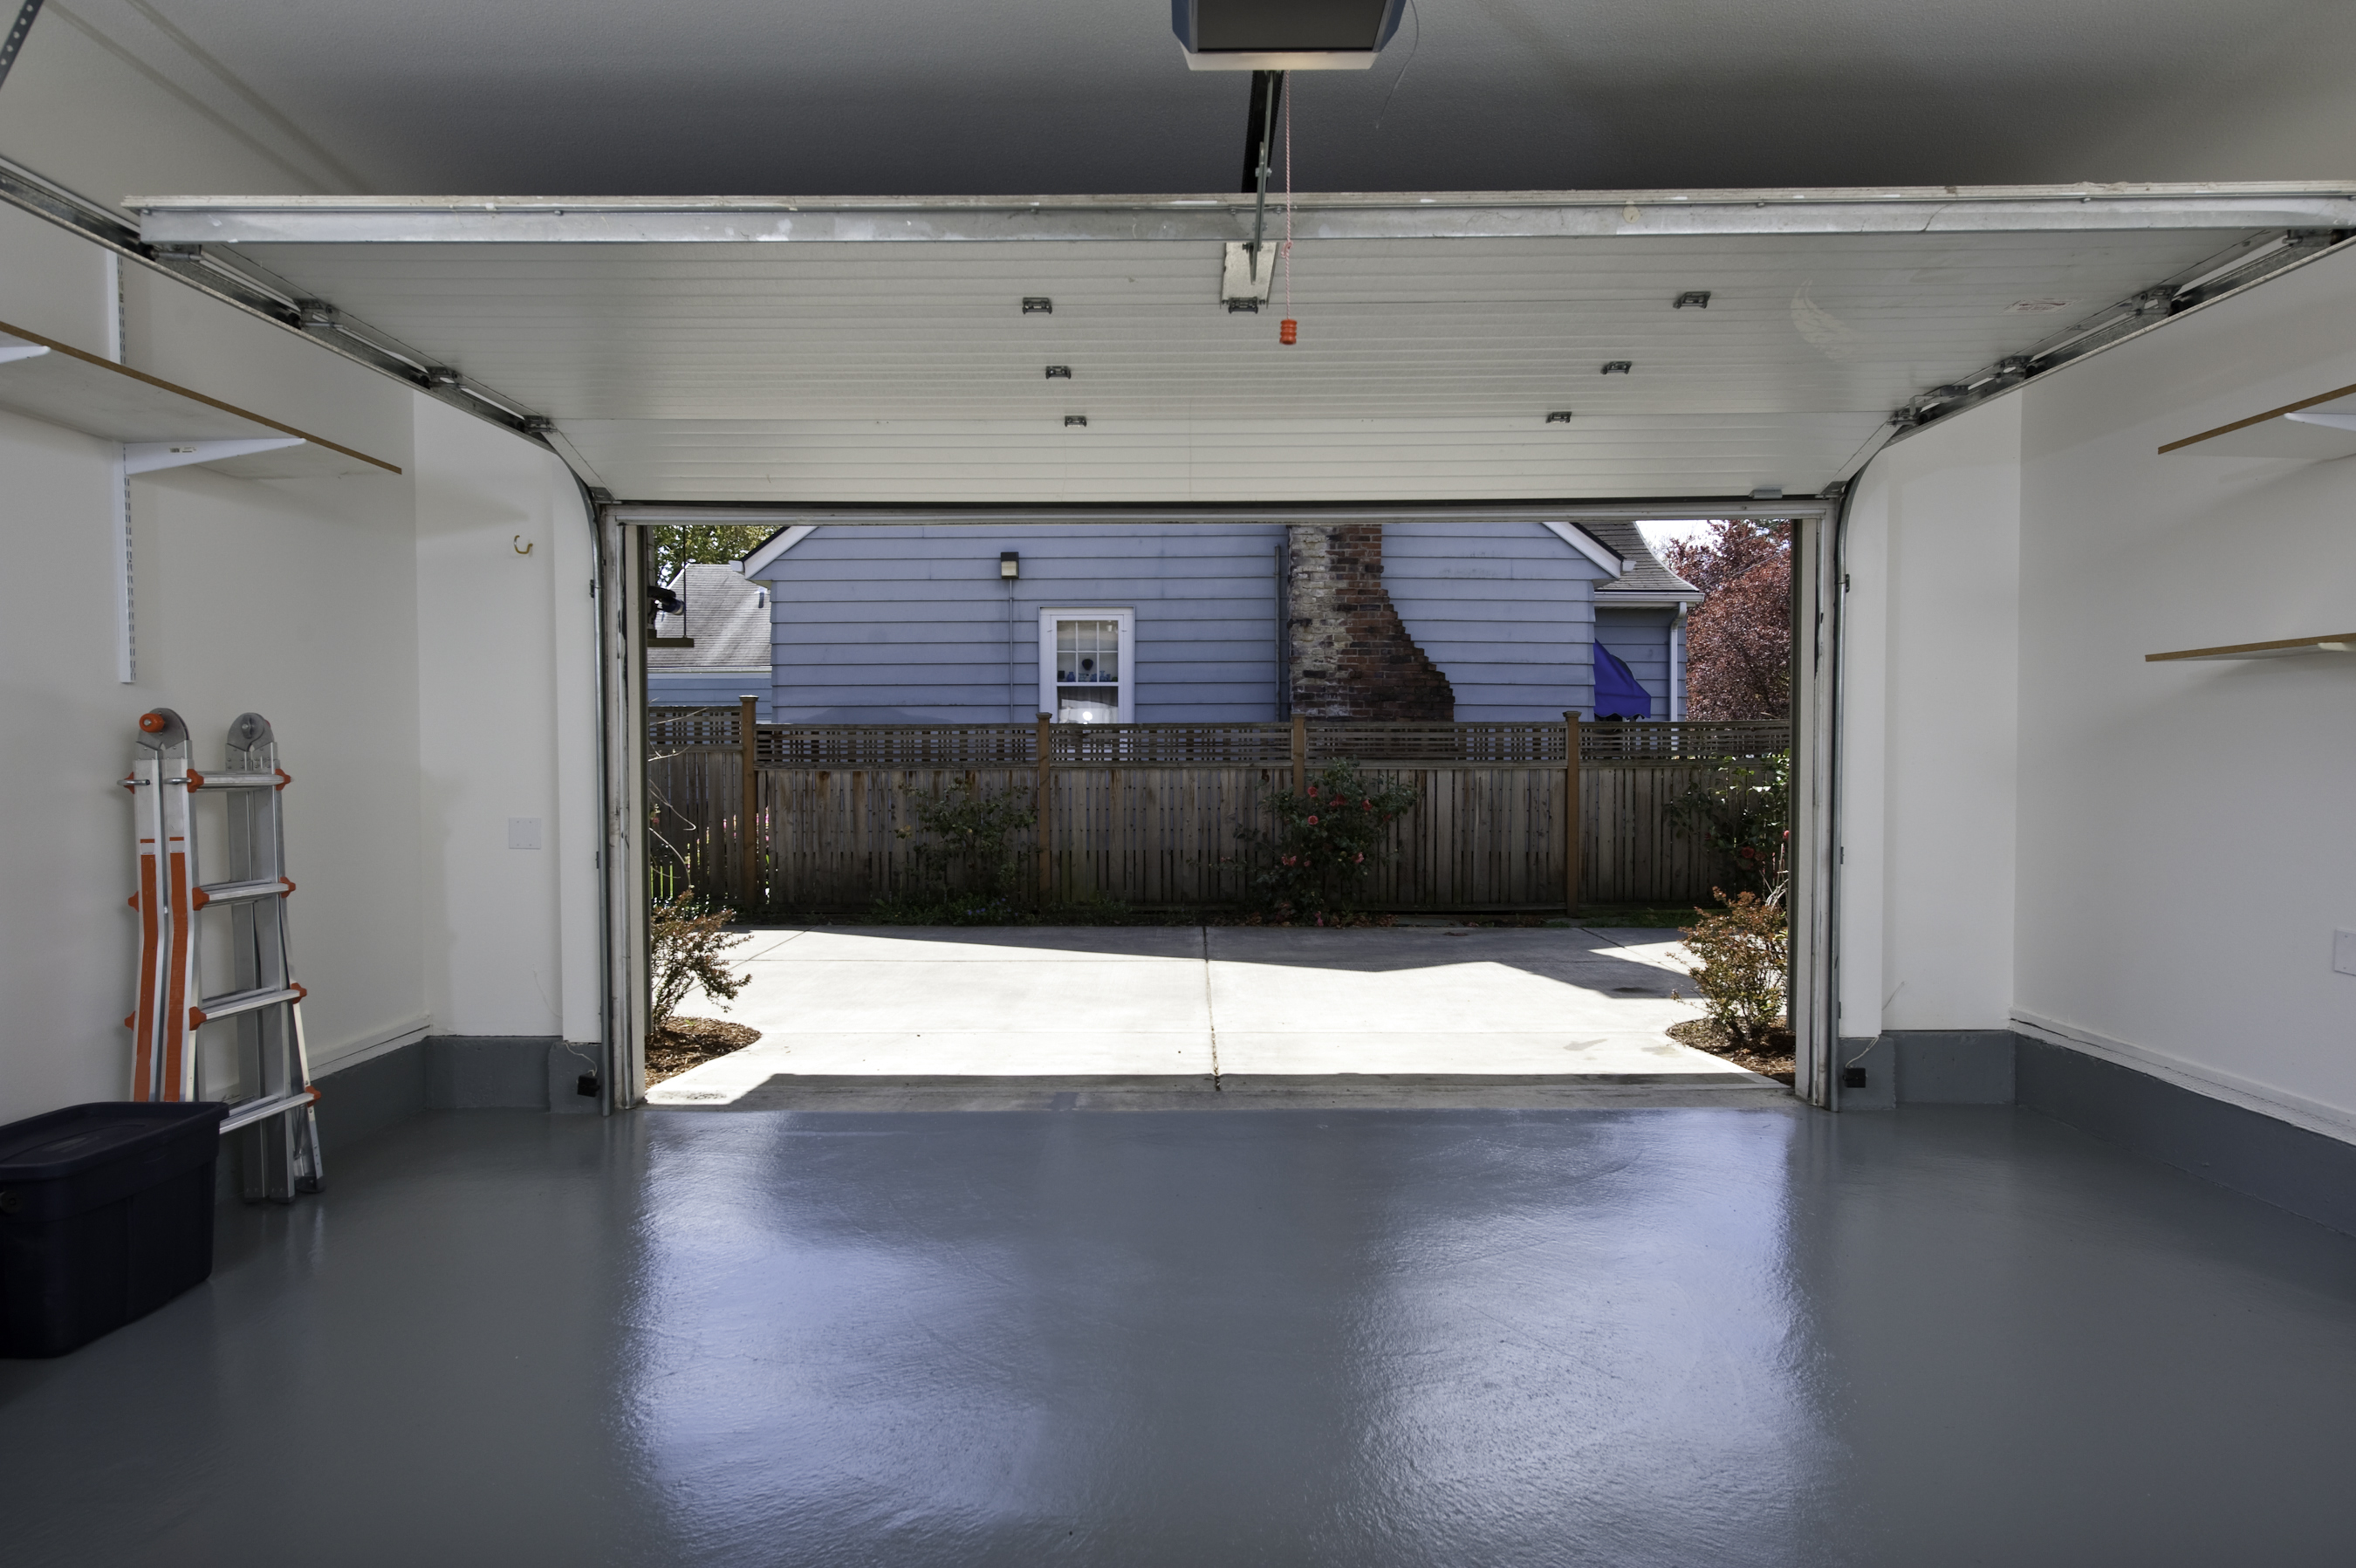 Organizing Your Garage on a Budget